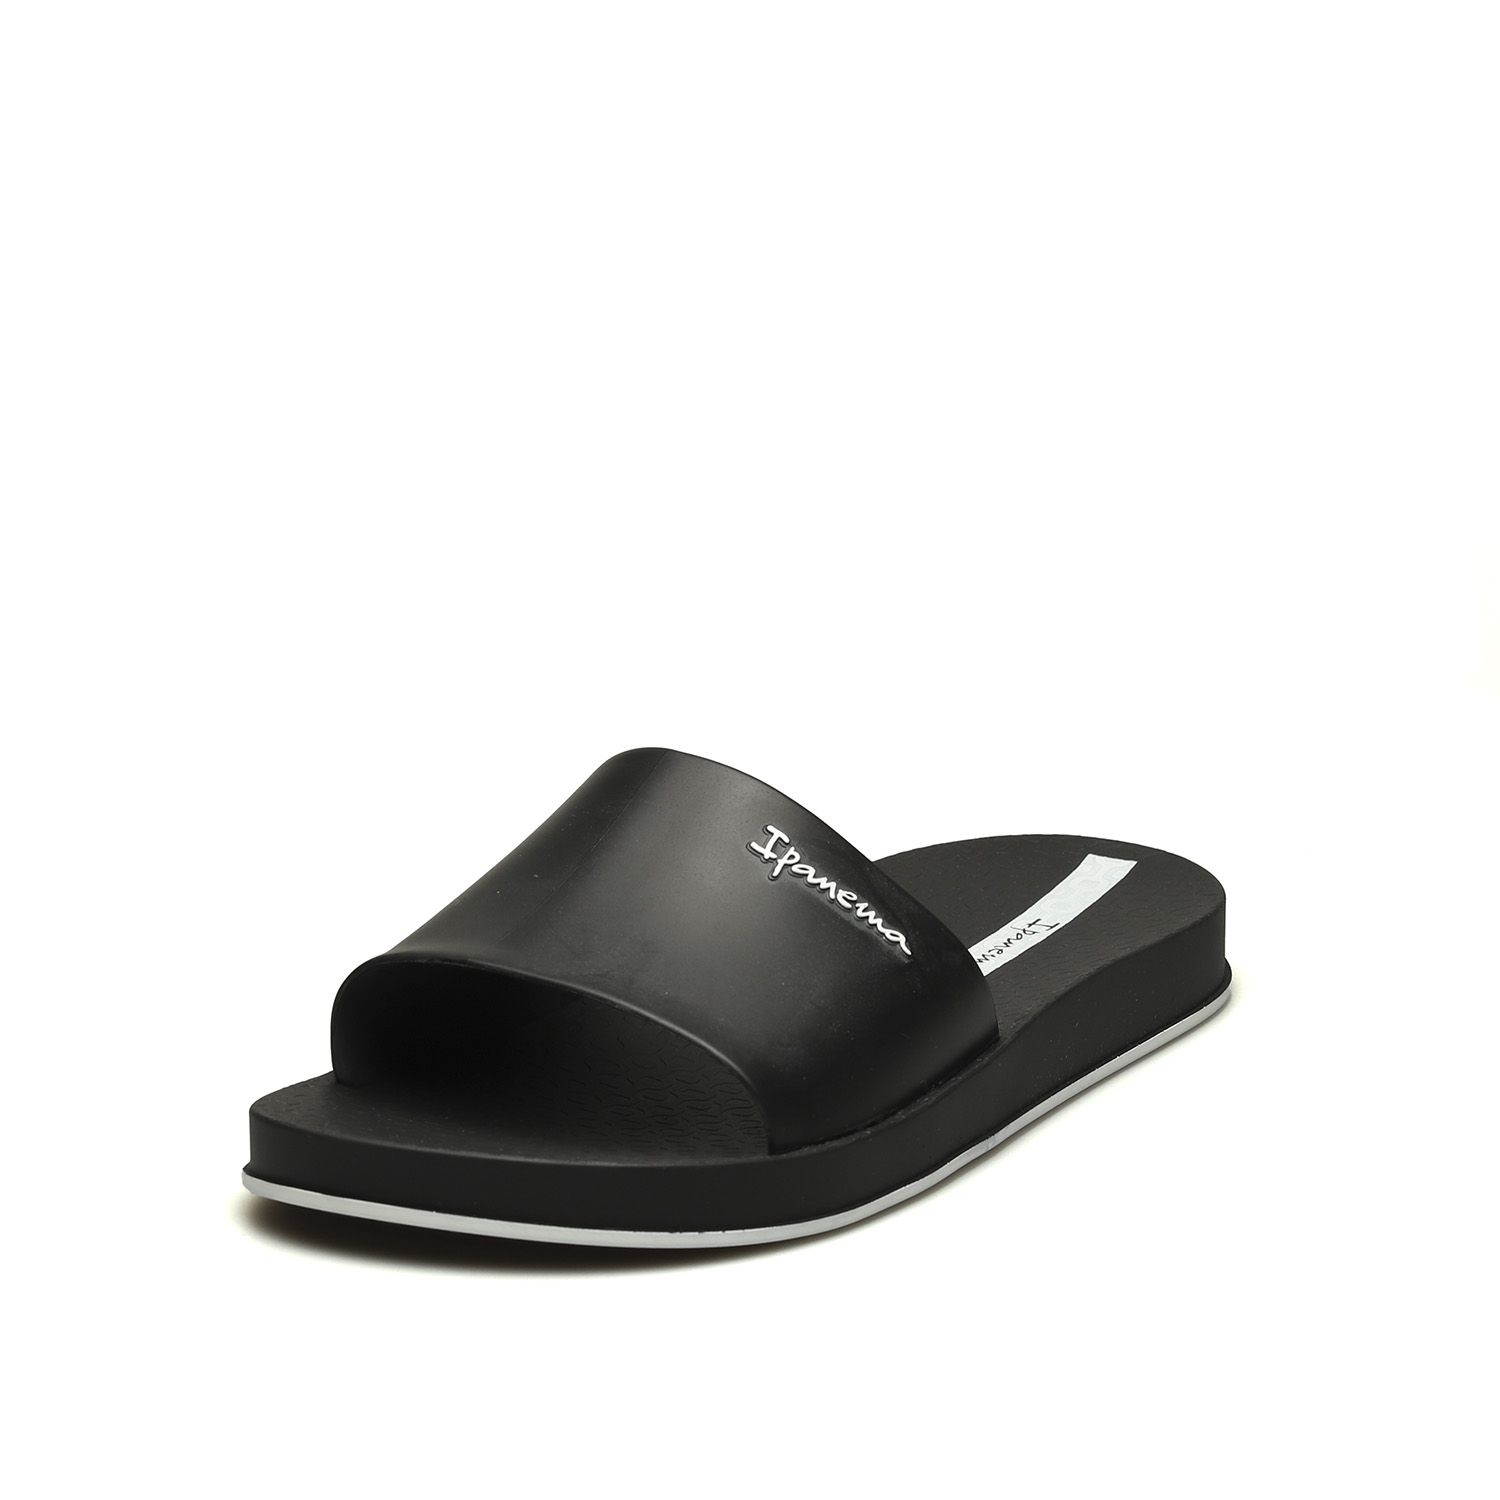 IPANEMA SLIDE BLACK